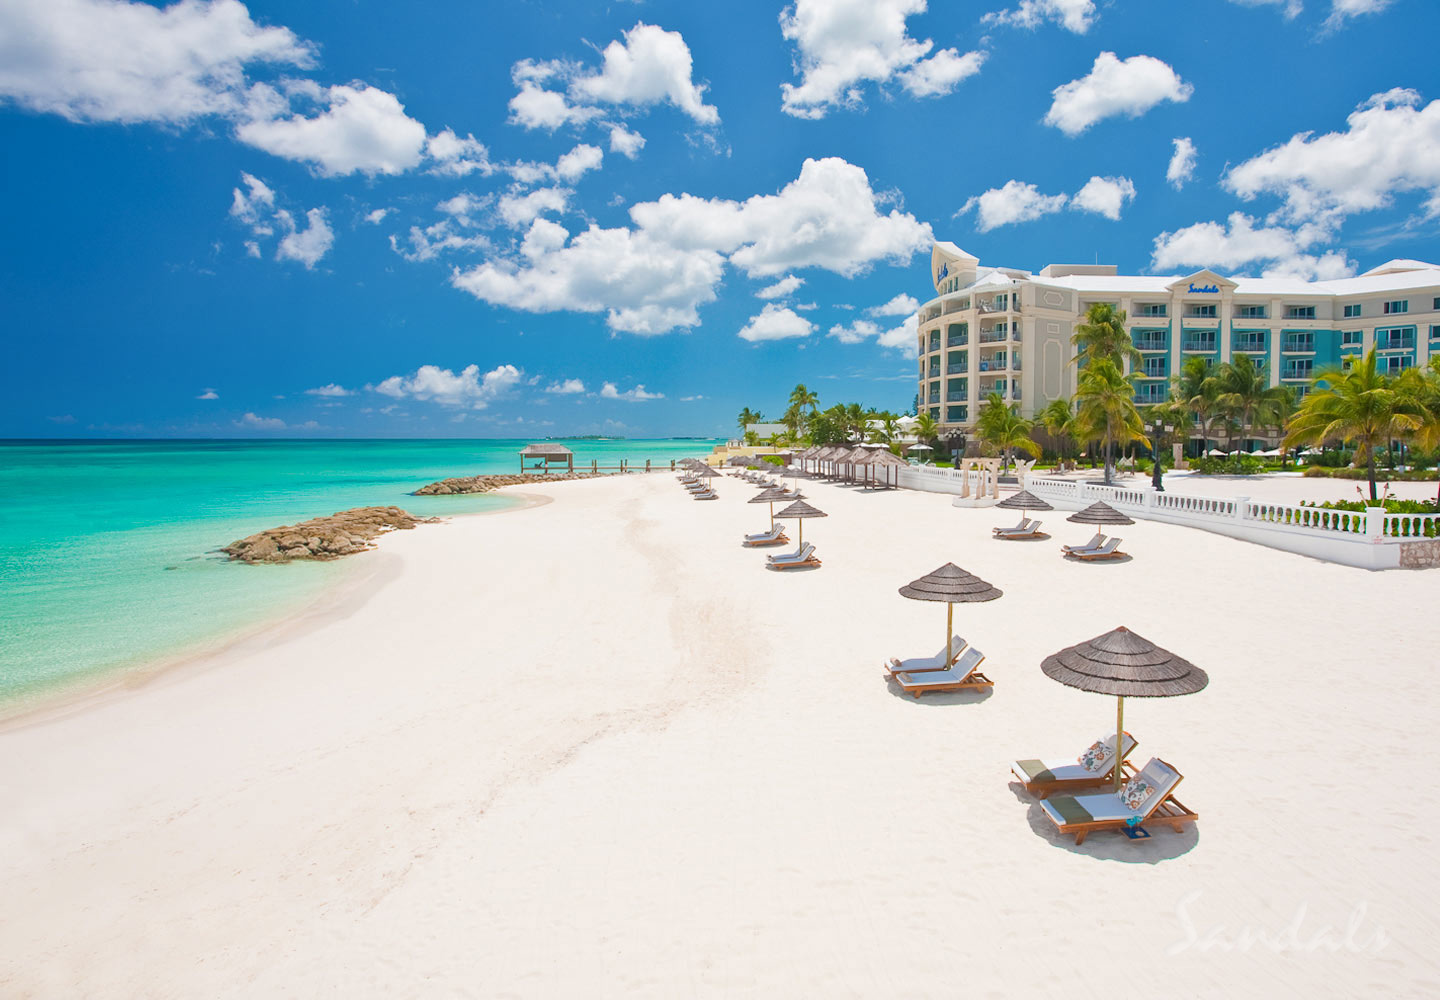 Travel Agency All-Inclusive Resort Sandals Royal Bahamian 001